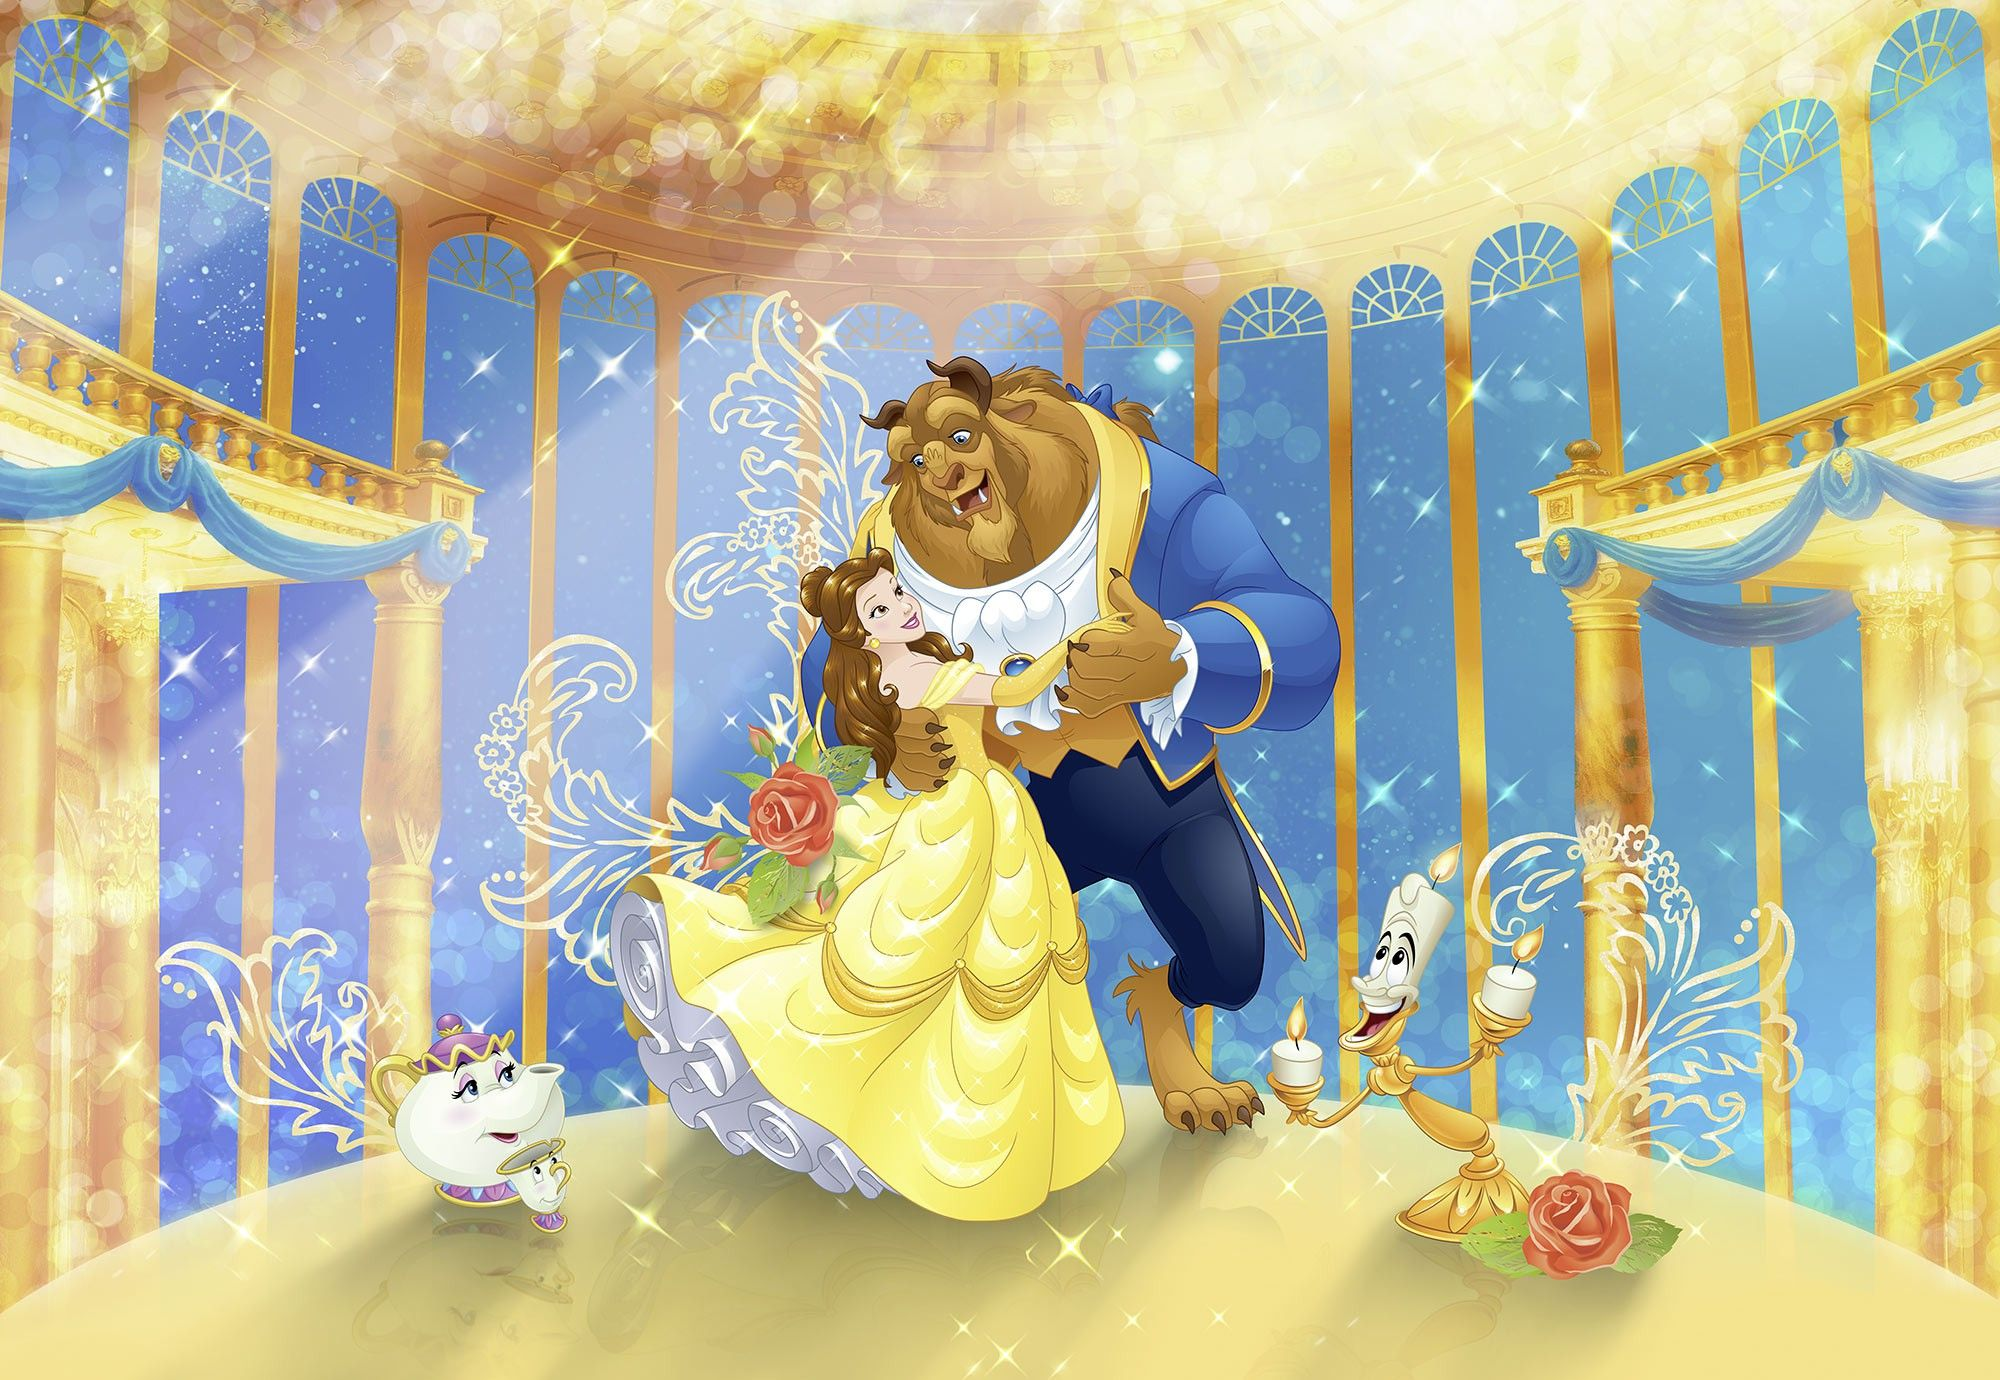 Beauty and the beast wall mural wallpaper disney buy it now for Buy mural wallpaper